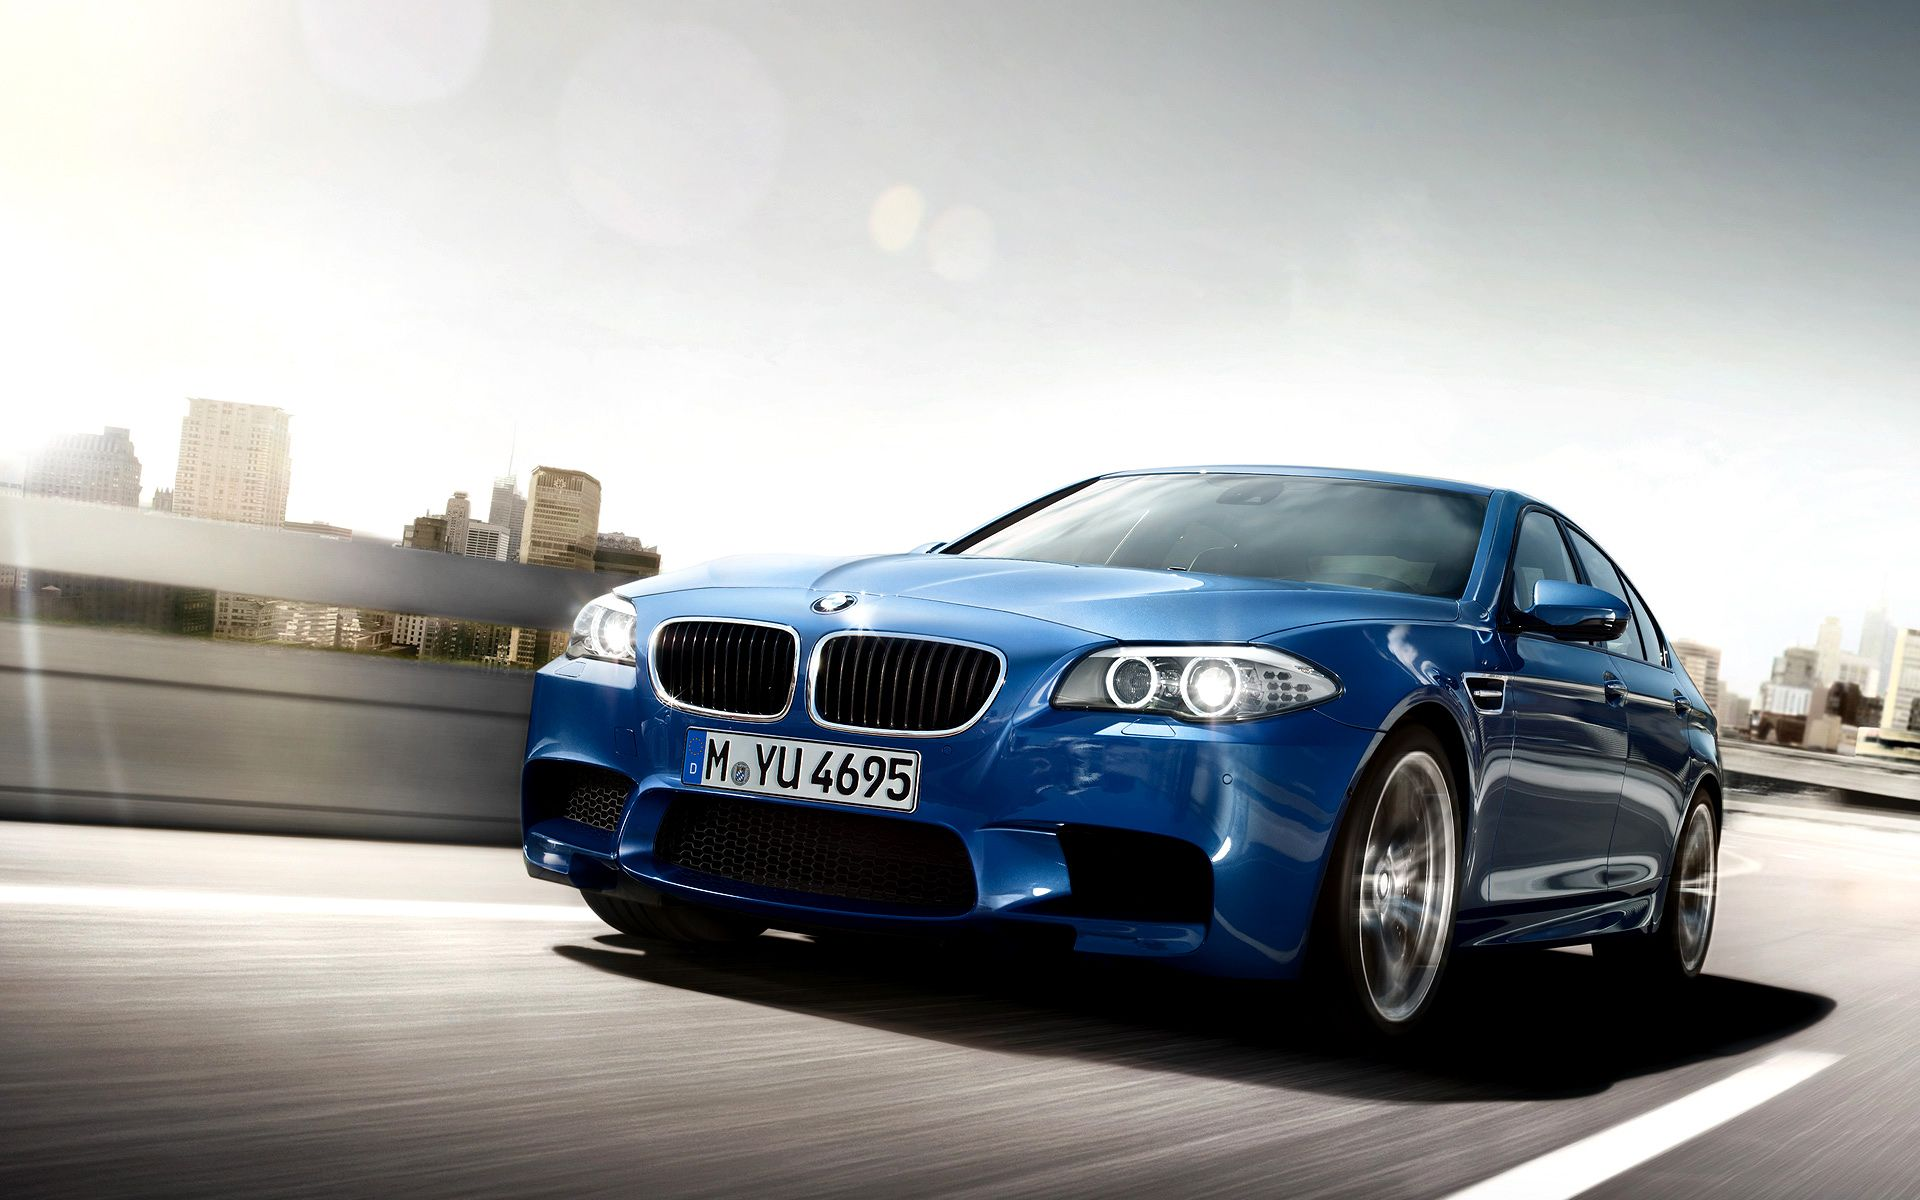 Image for BMW F10 M5 High Quality Wallpapers BMW Cars